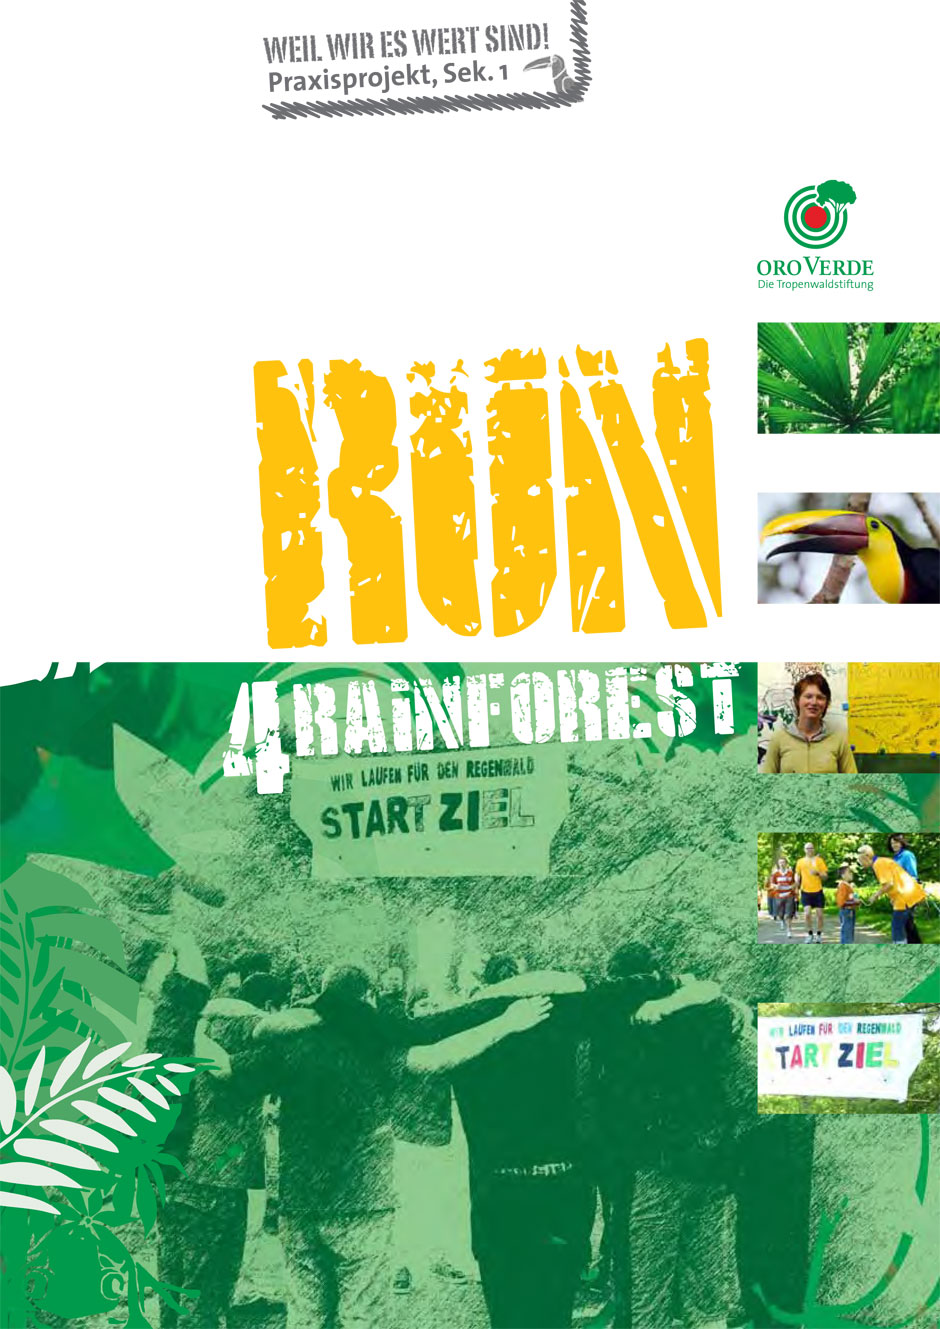 Praxisprojekt Sponsorenlauf Run 4 Rainforest